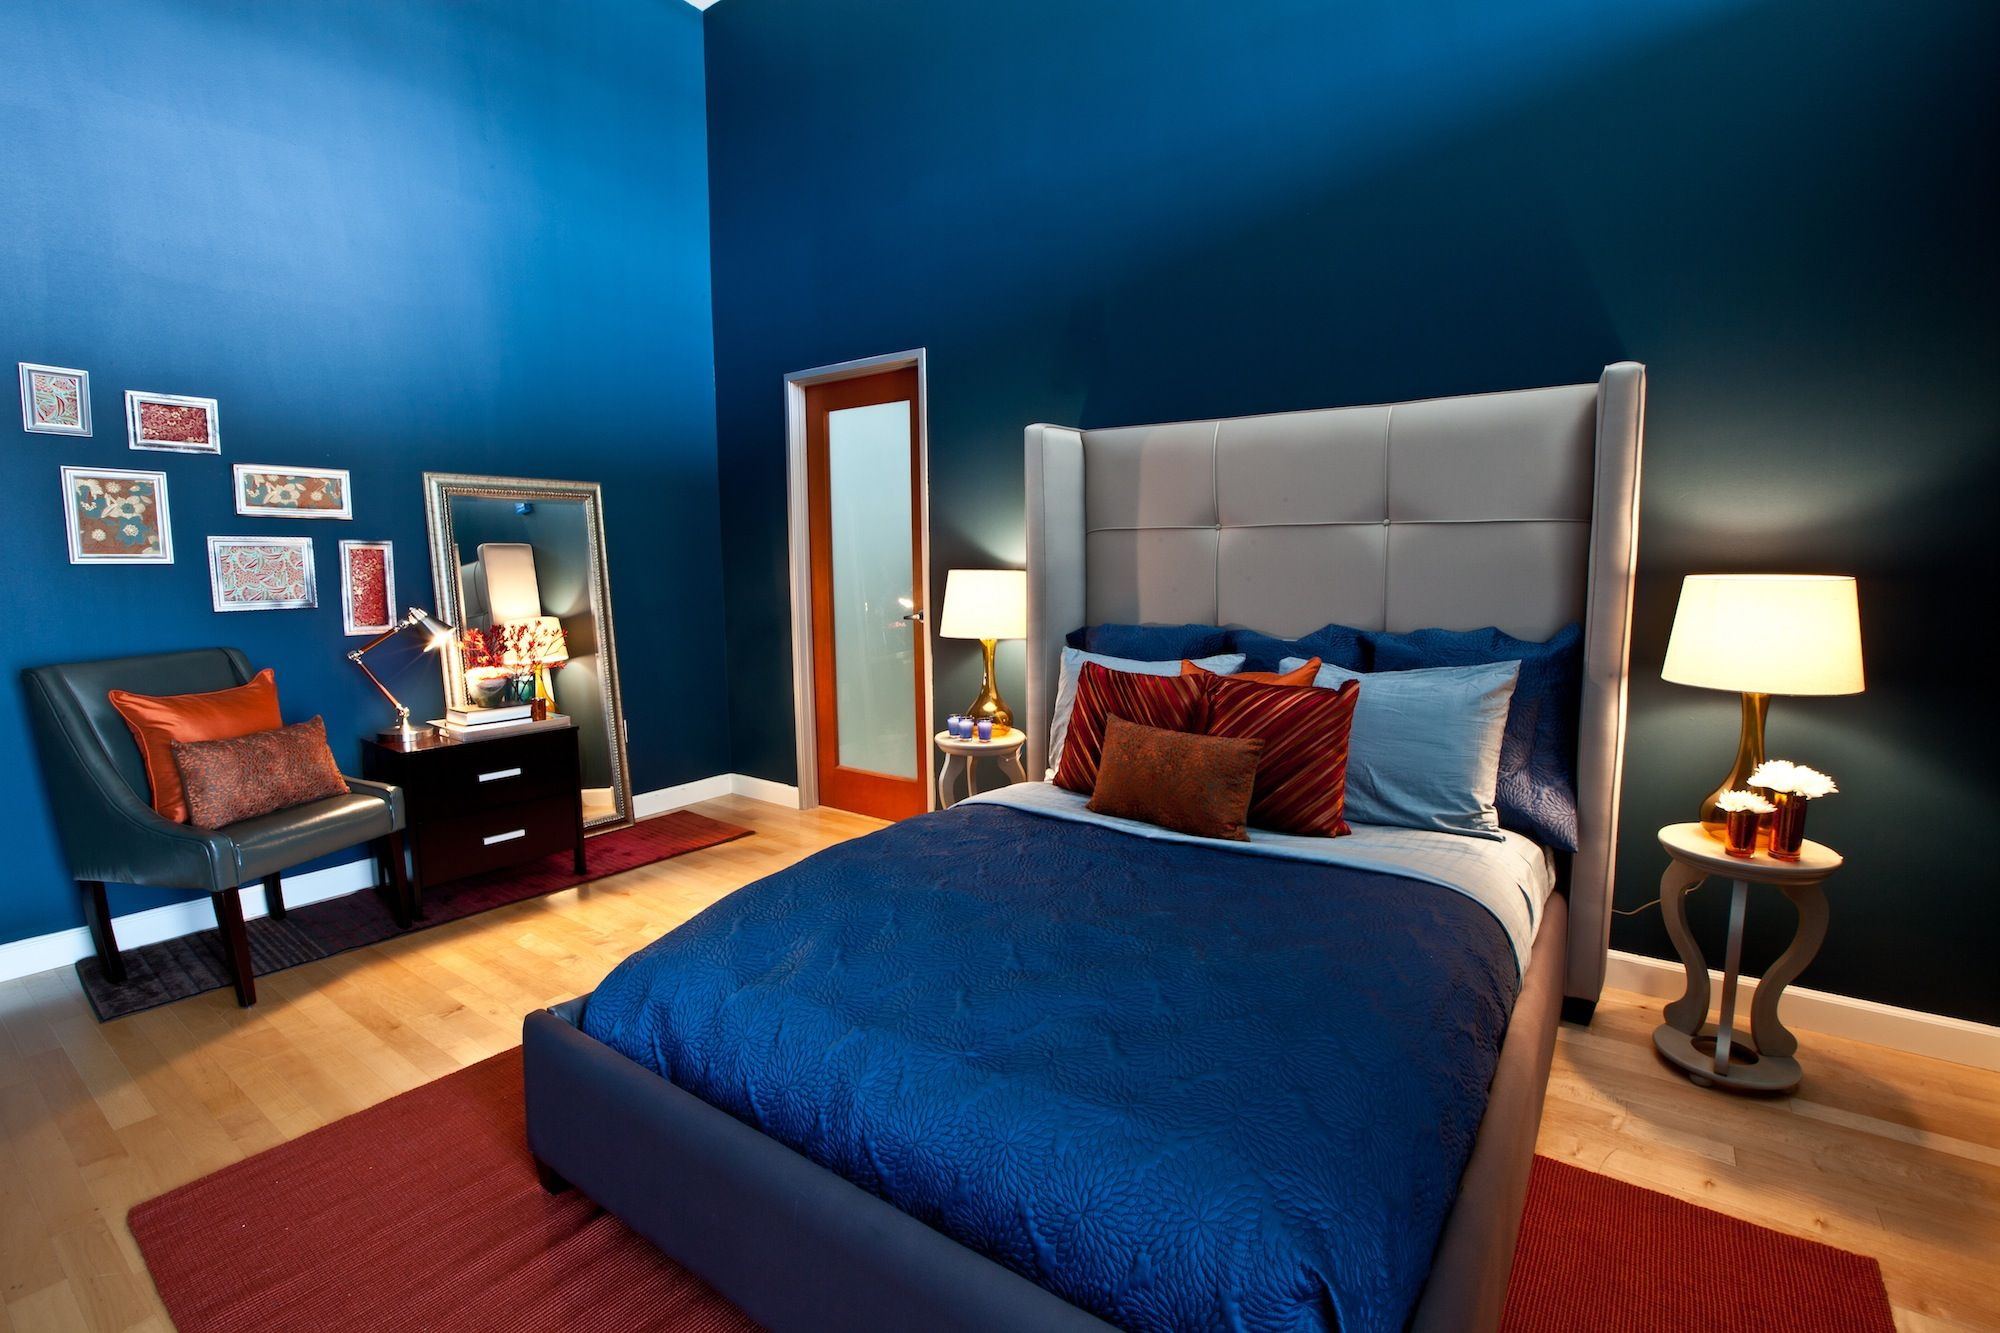 Blue Bedroom Ideas #3195